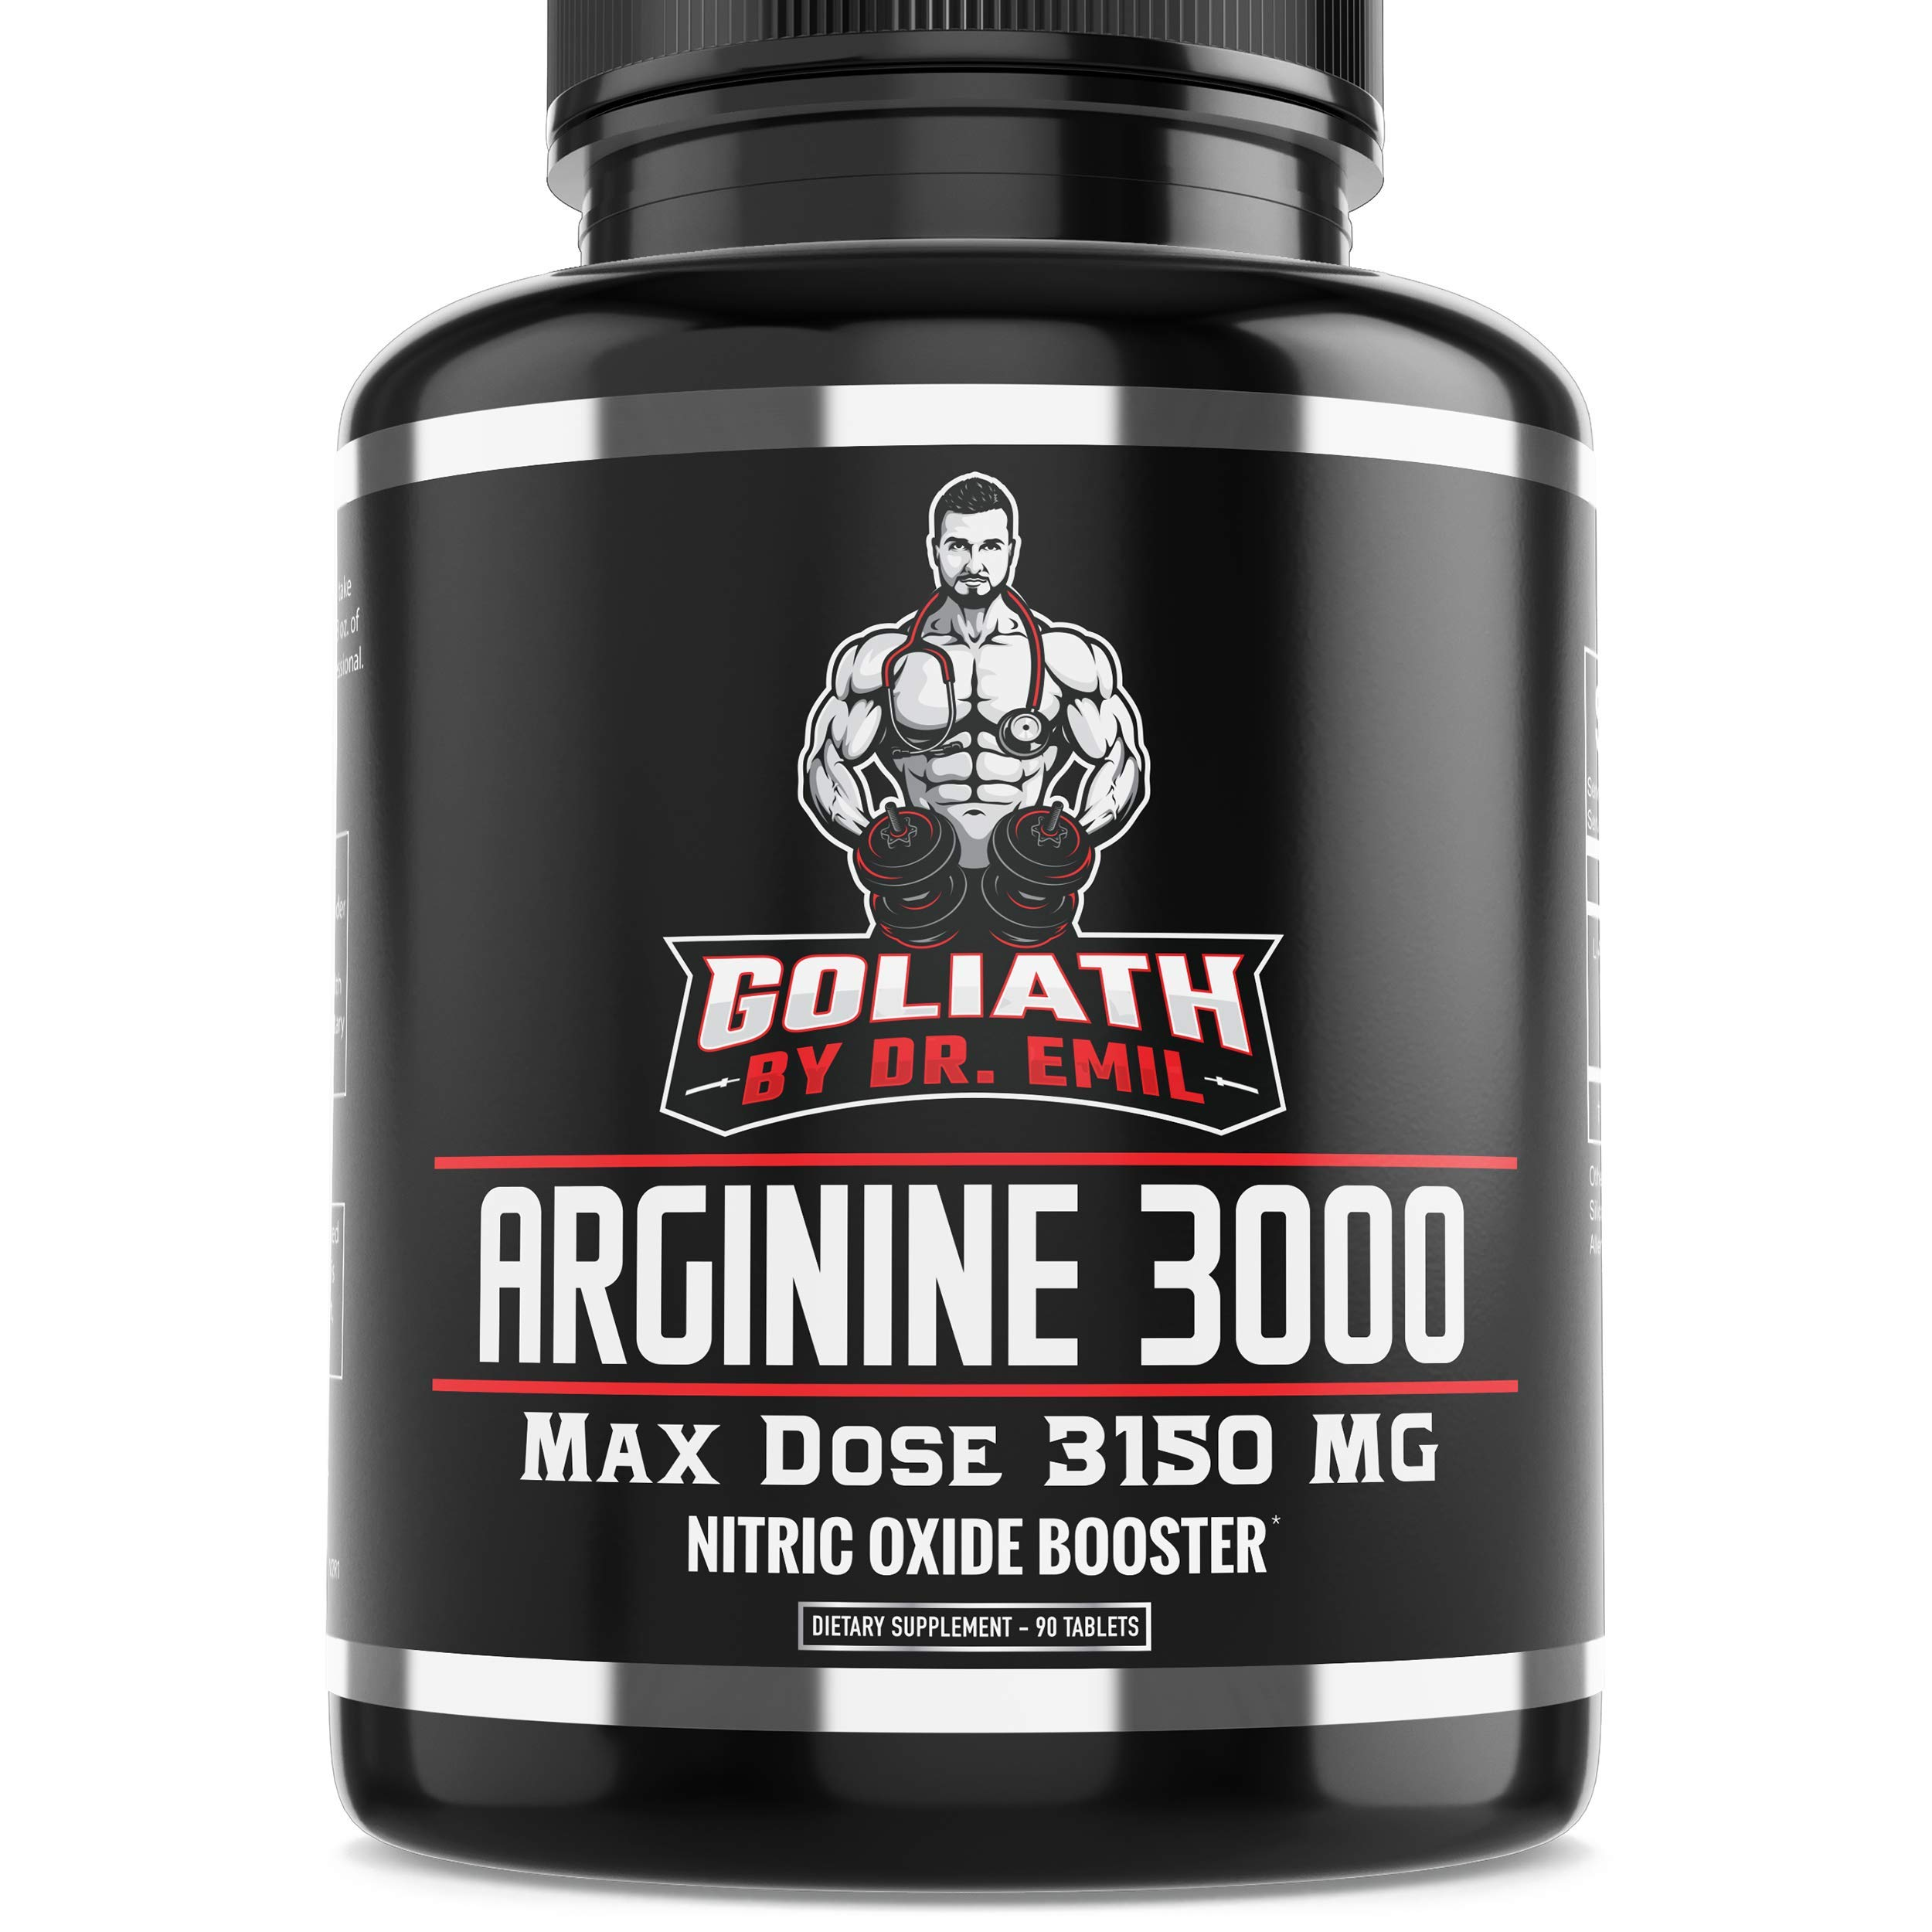 Dr. Emil - L Arginine (3150mg) Highest Capsule Dose - Nitric Oxide Supplement for Muscle Growth, Vascularity, Endurance & Heart Health (AAKG & HCL) - 90 Tablets